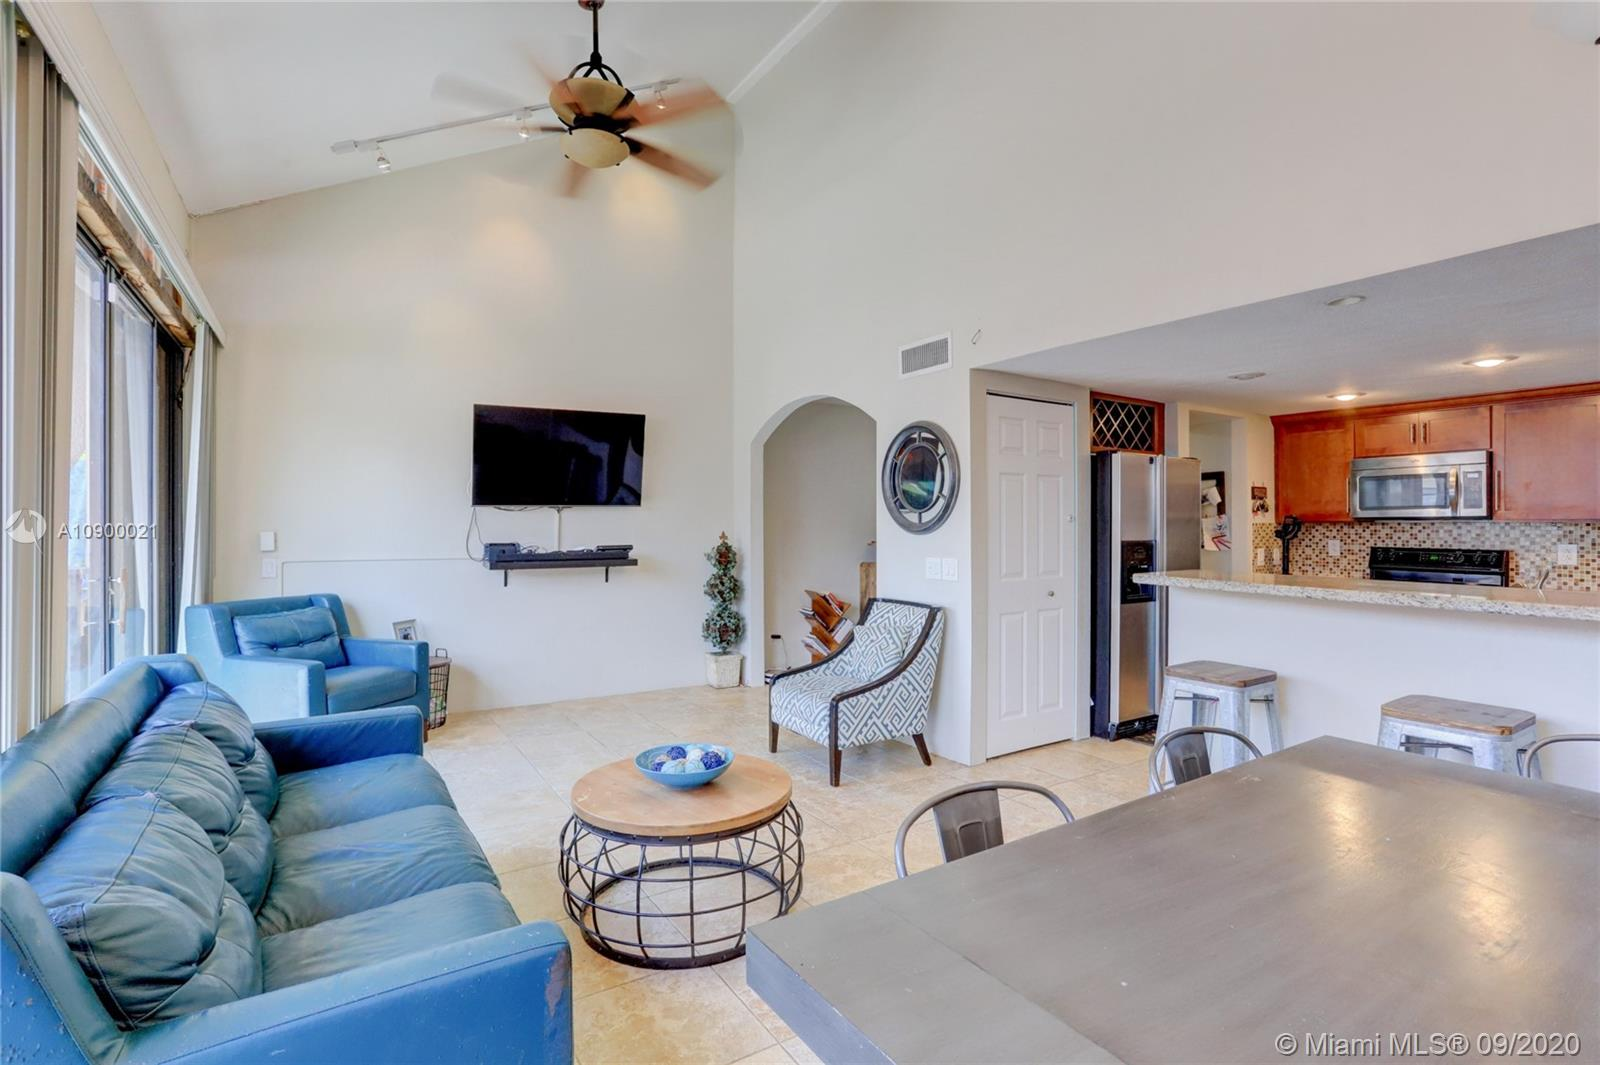 Incredible opportunity to own rarely available 3Bed/3Bath corner townhome in Villas Lakes! Brand new roof! Open concept remodeled kitchen perfect for entertaining and spending time with family! Enjoy barbecuing and the South Florida sunshine in your large screened in patio! Tile and laminate throughout! 3 yr old water heater, newer washer/dryer and brand new kitchen appliances! Master bedroom upstairs with walk in closet! Down the street from Pembroke Lakes Mall and CB Smith Park! With almost 1700 sq ft under air, this spacious townhome will not last long!!